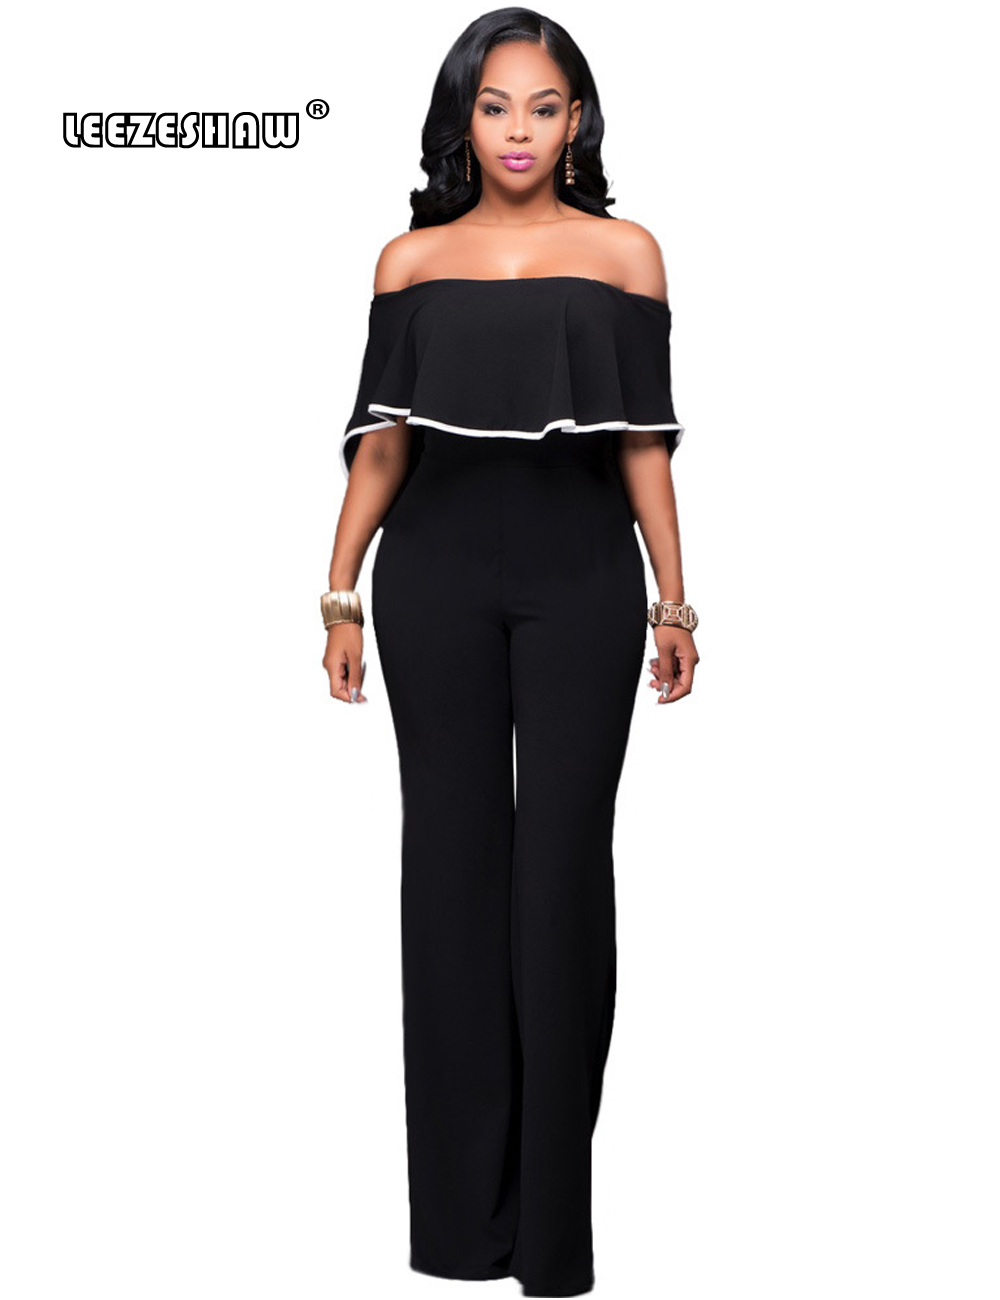 Leezeshaw Slash Neck Plus Size Women Loose Elegant Work Rompers Full Length Overalls Sexy New Fashion Casual Cape Jumpsuits